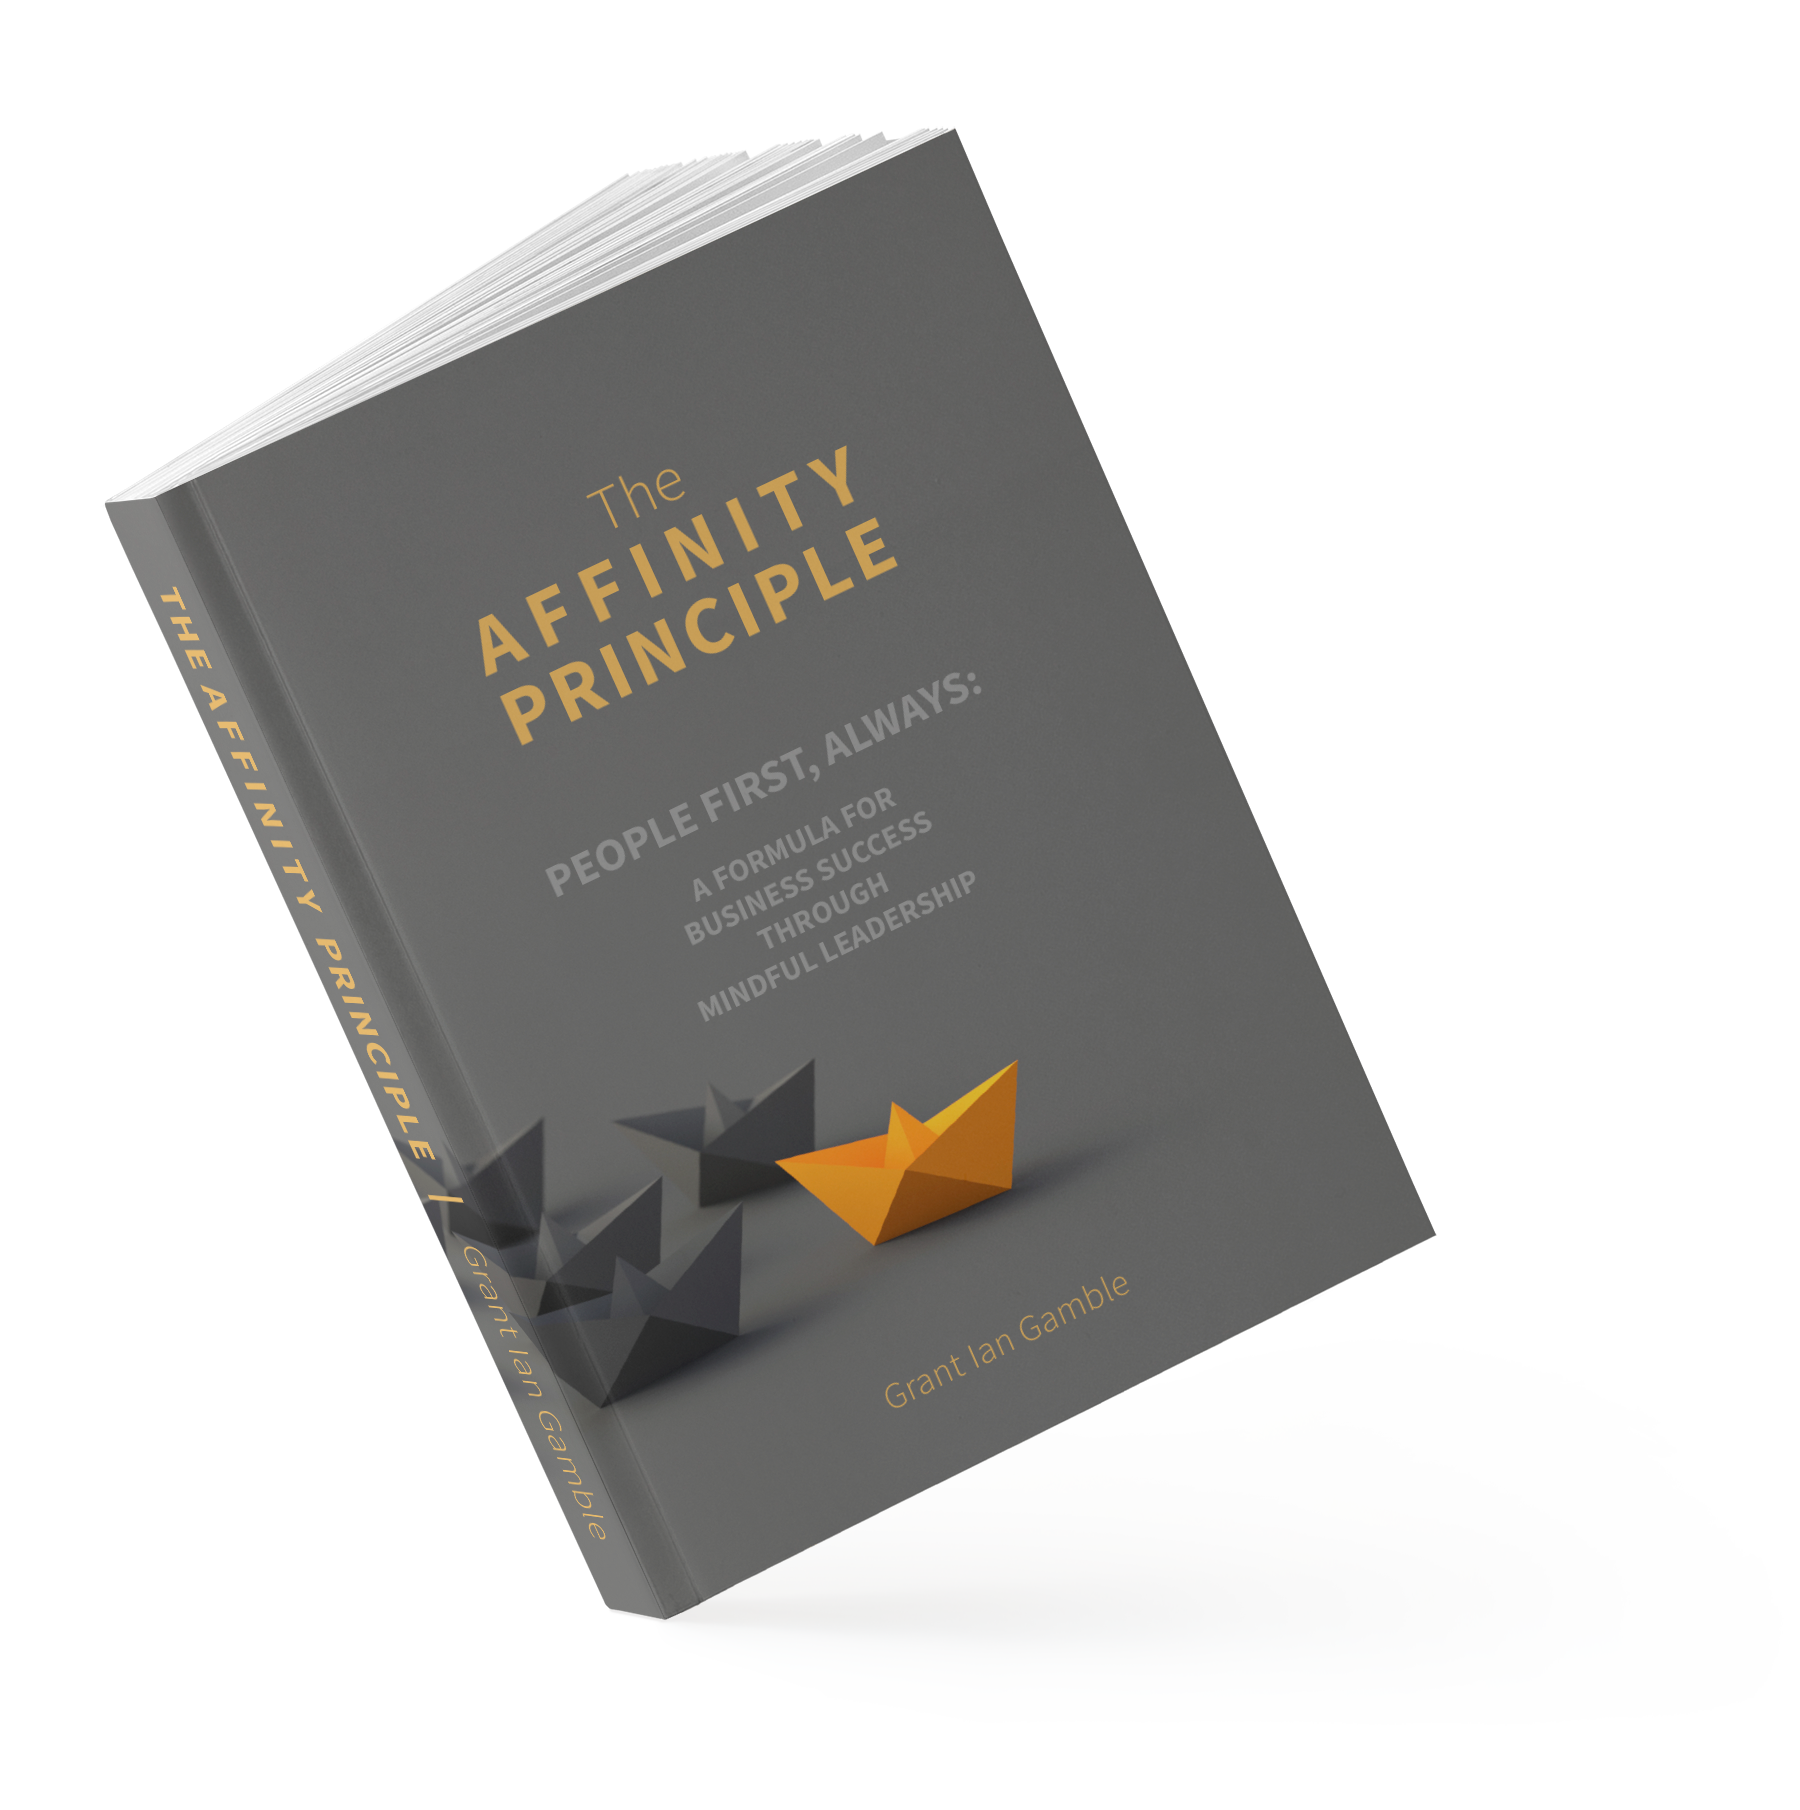 The Affinity Principle | Business Mindful Leadership | Grant Ian Gamble